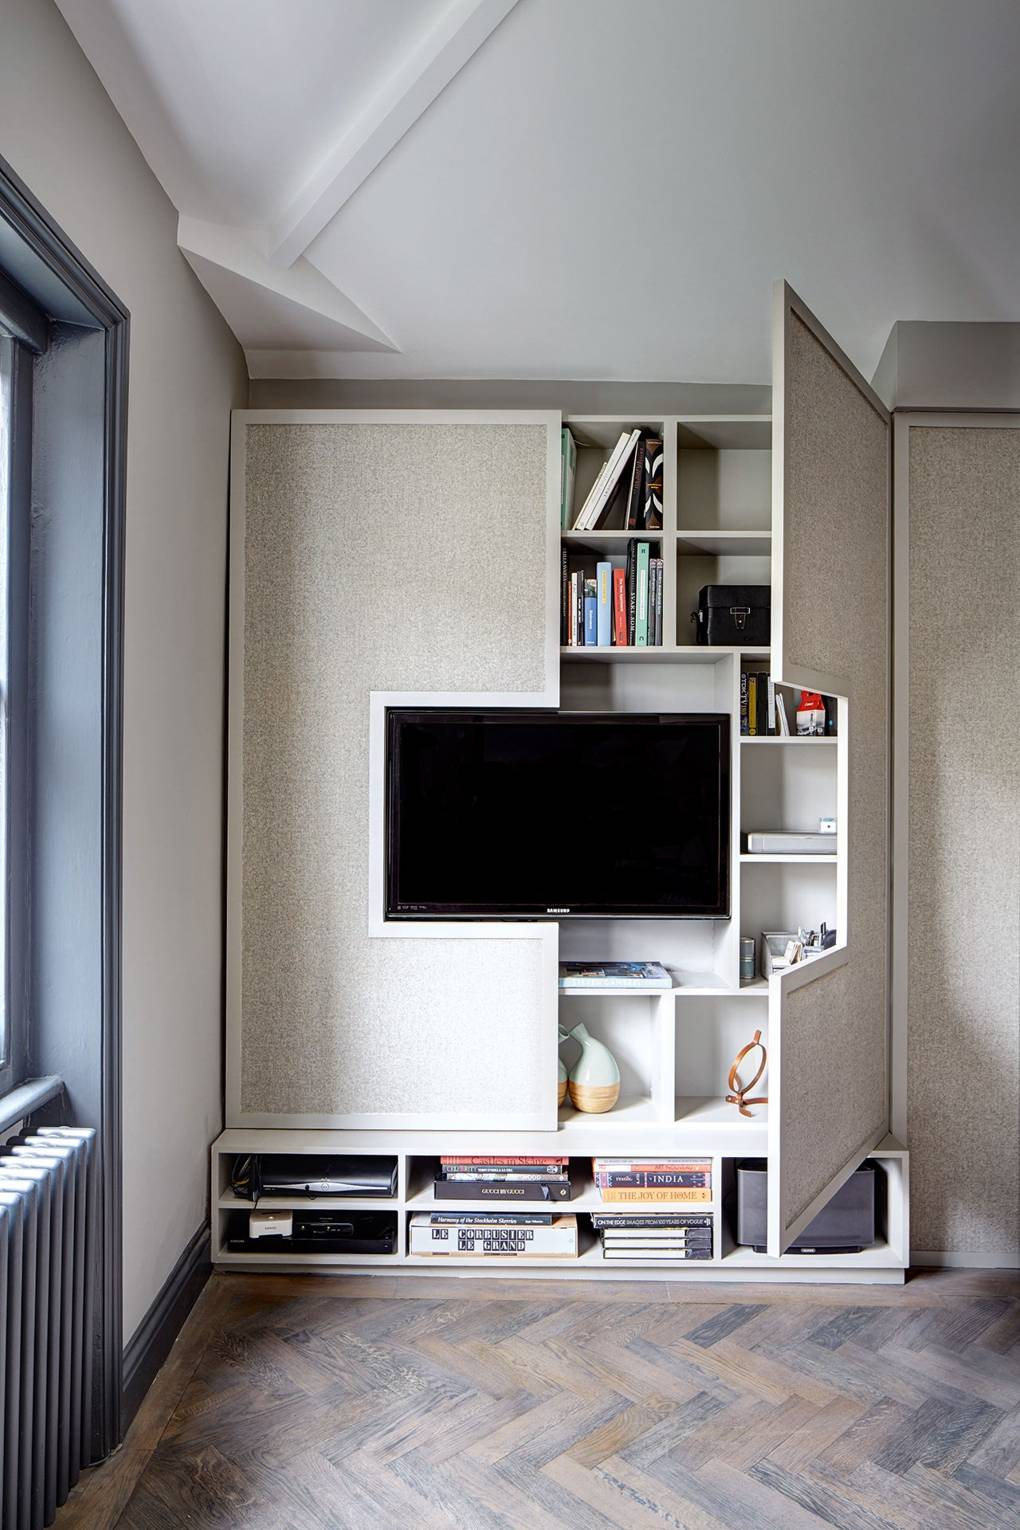 Wall Tv Cabinet Storage Small Space Flat Design Ideas House Garden